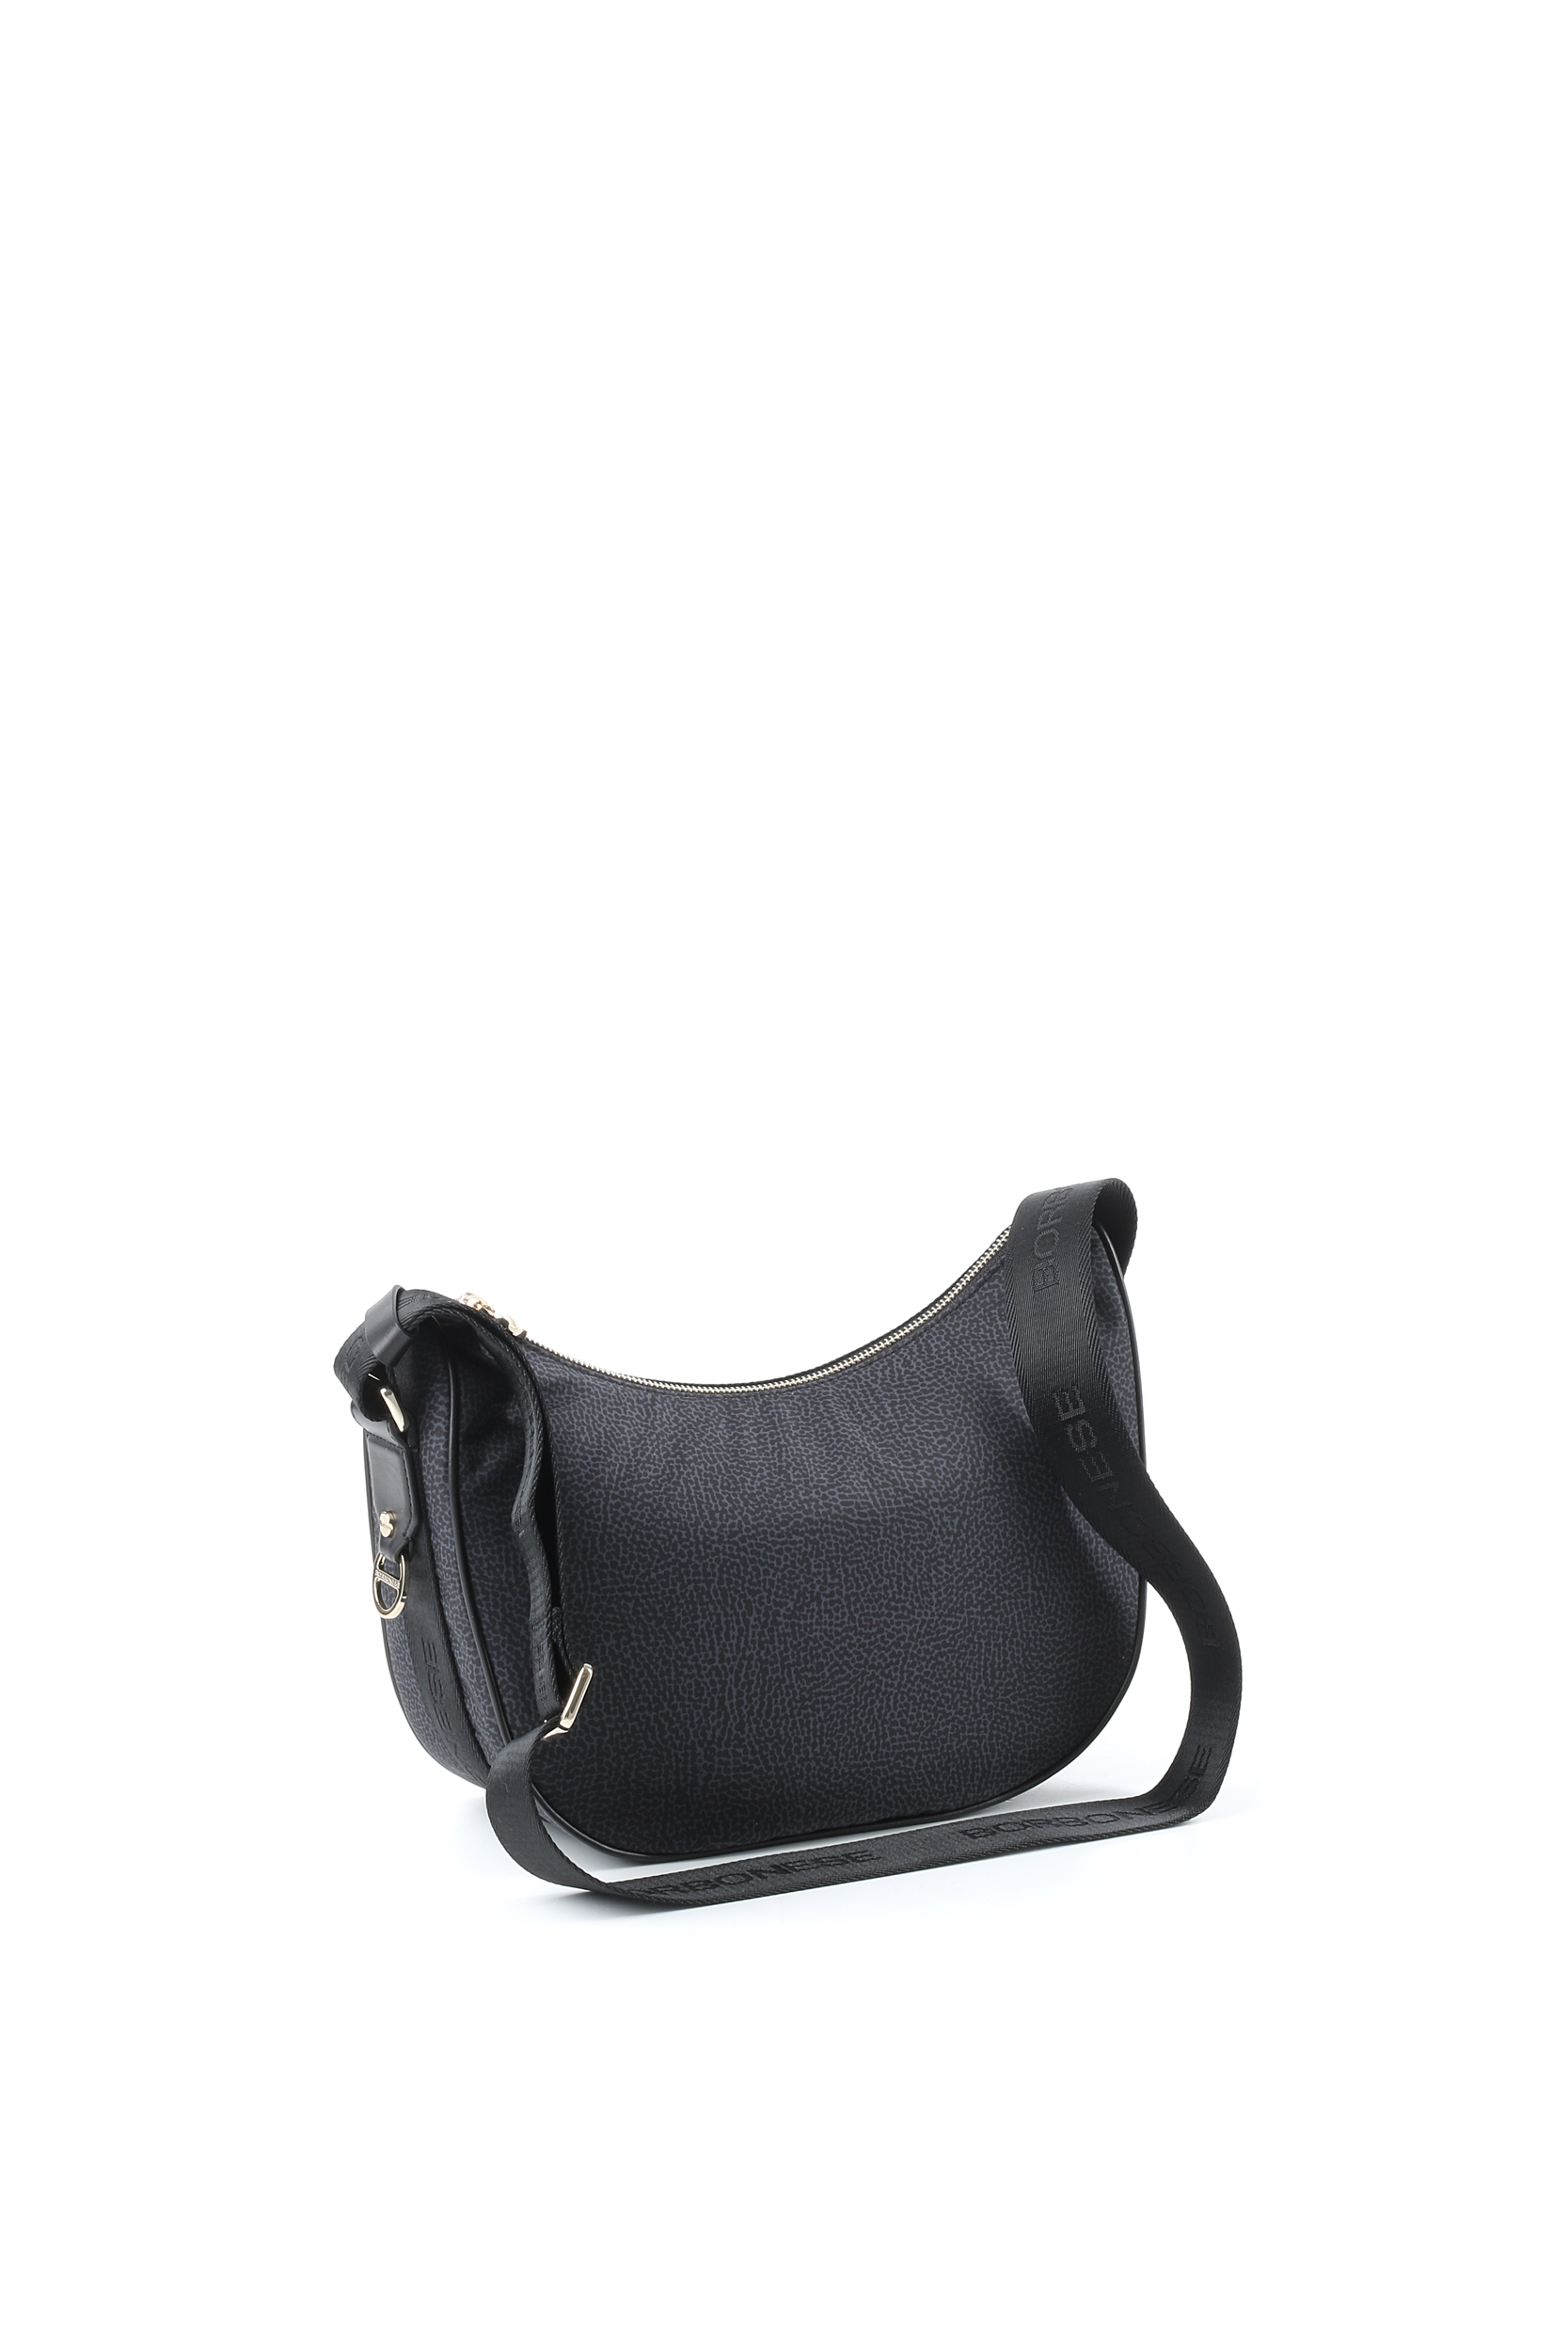 new product 1381f 13876 Details about Borbonese Women's Bags Shoulder Bag - 934776296 | Black |  Spring Summer